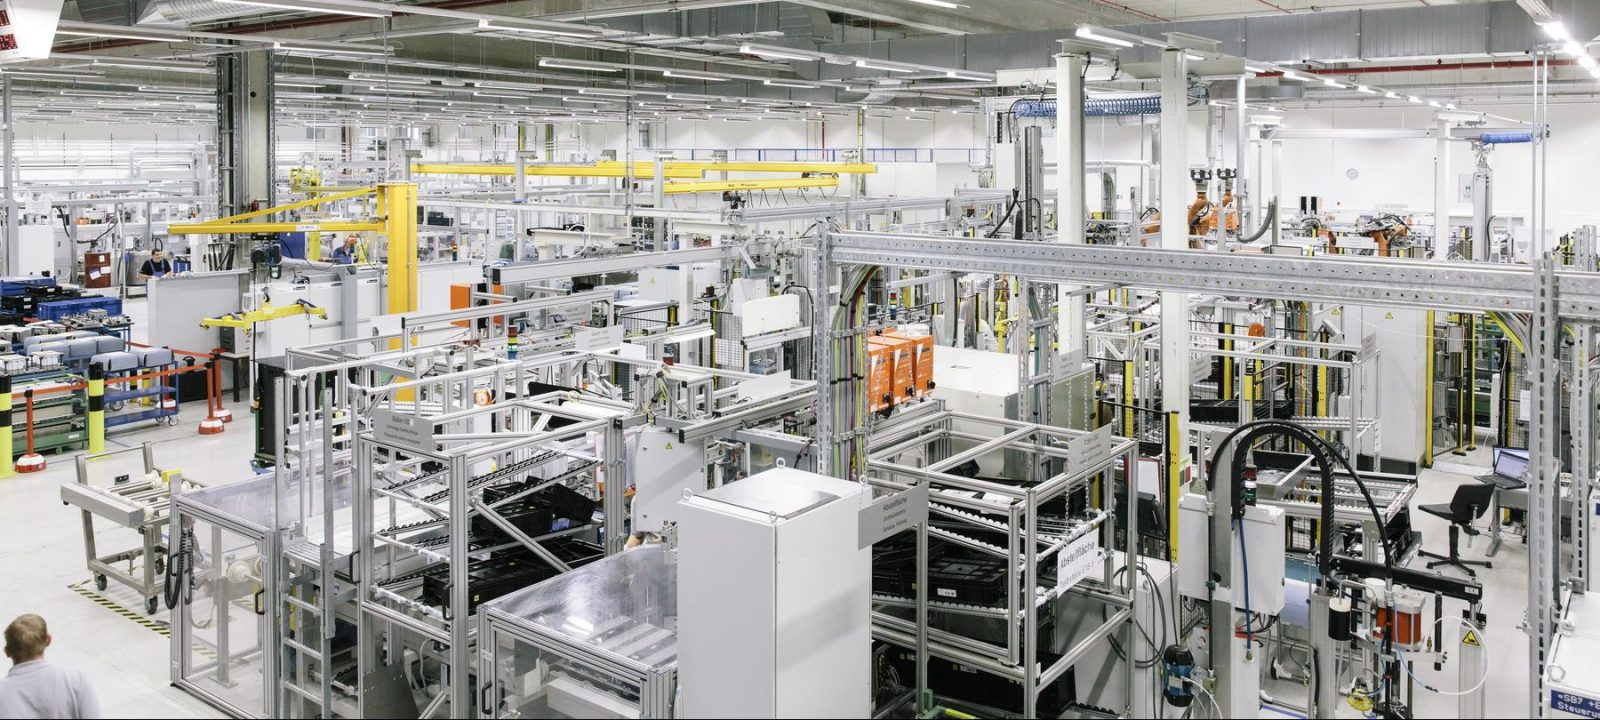 China Starts Solid State Battery Production Pushing